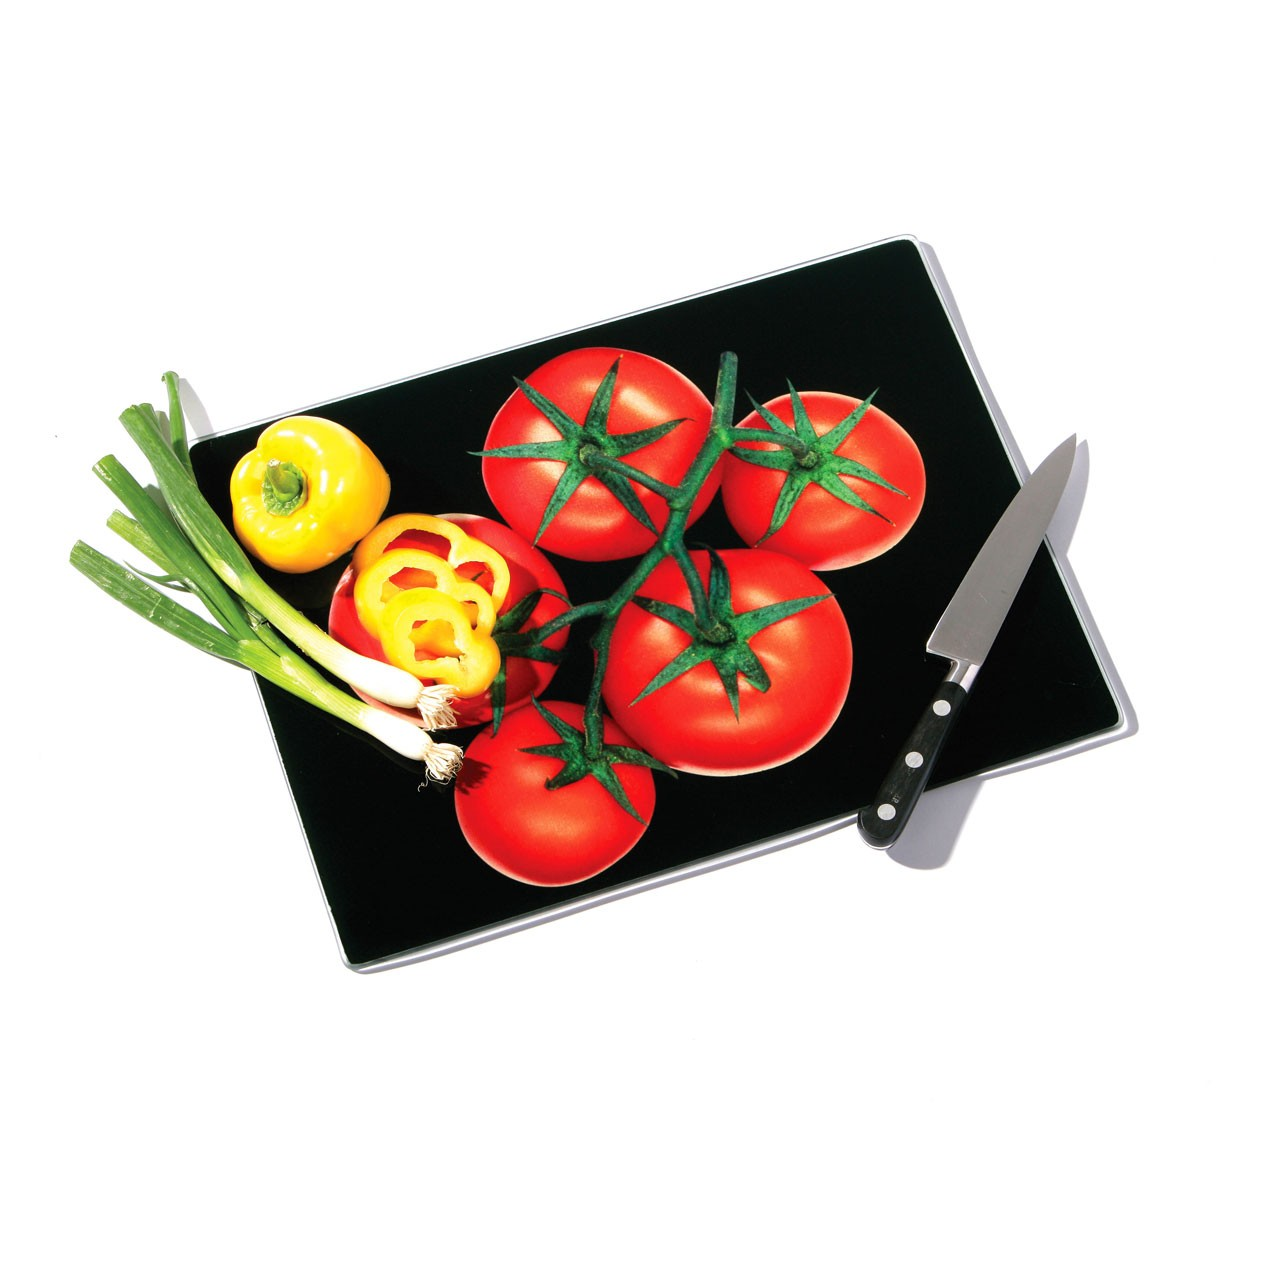 Glass Chopping Board with Tomato Design - Black